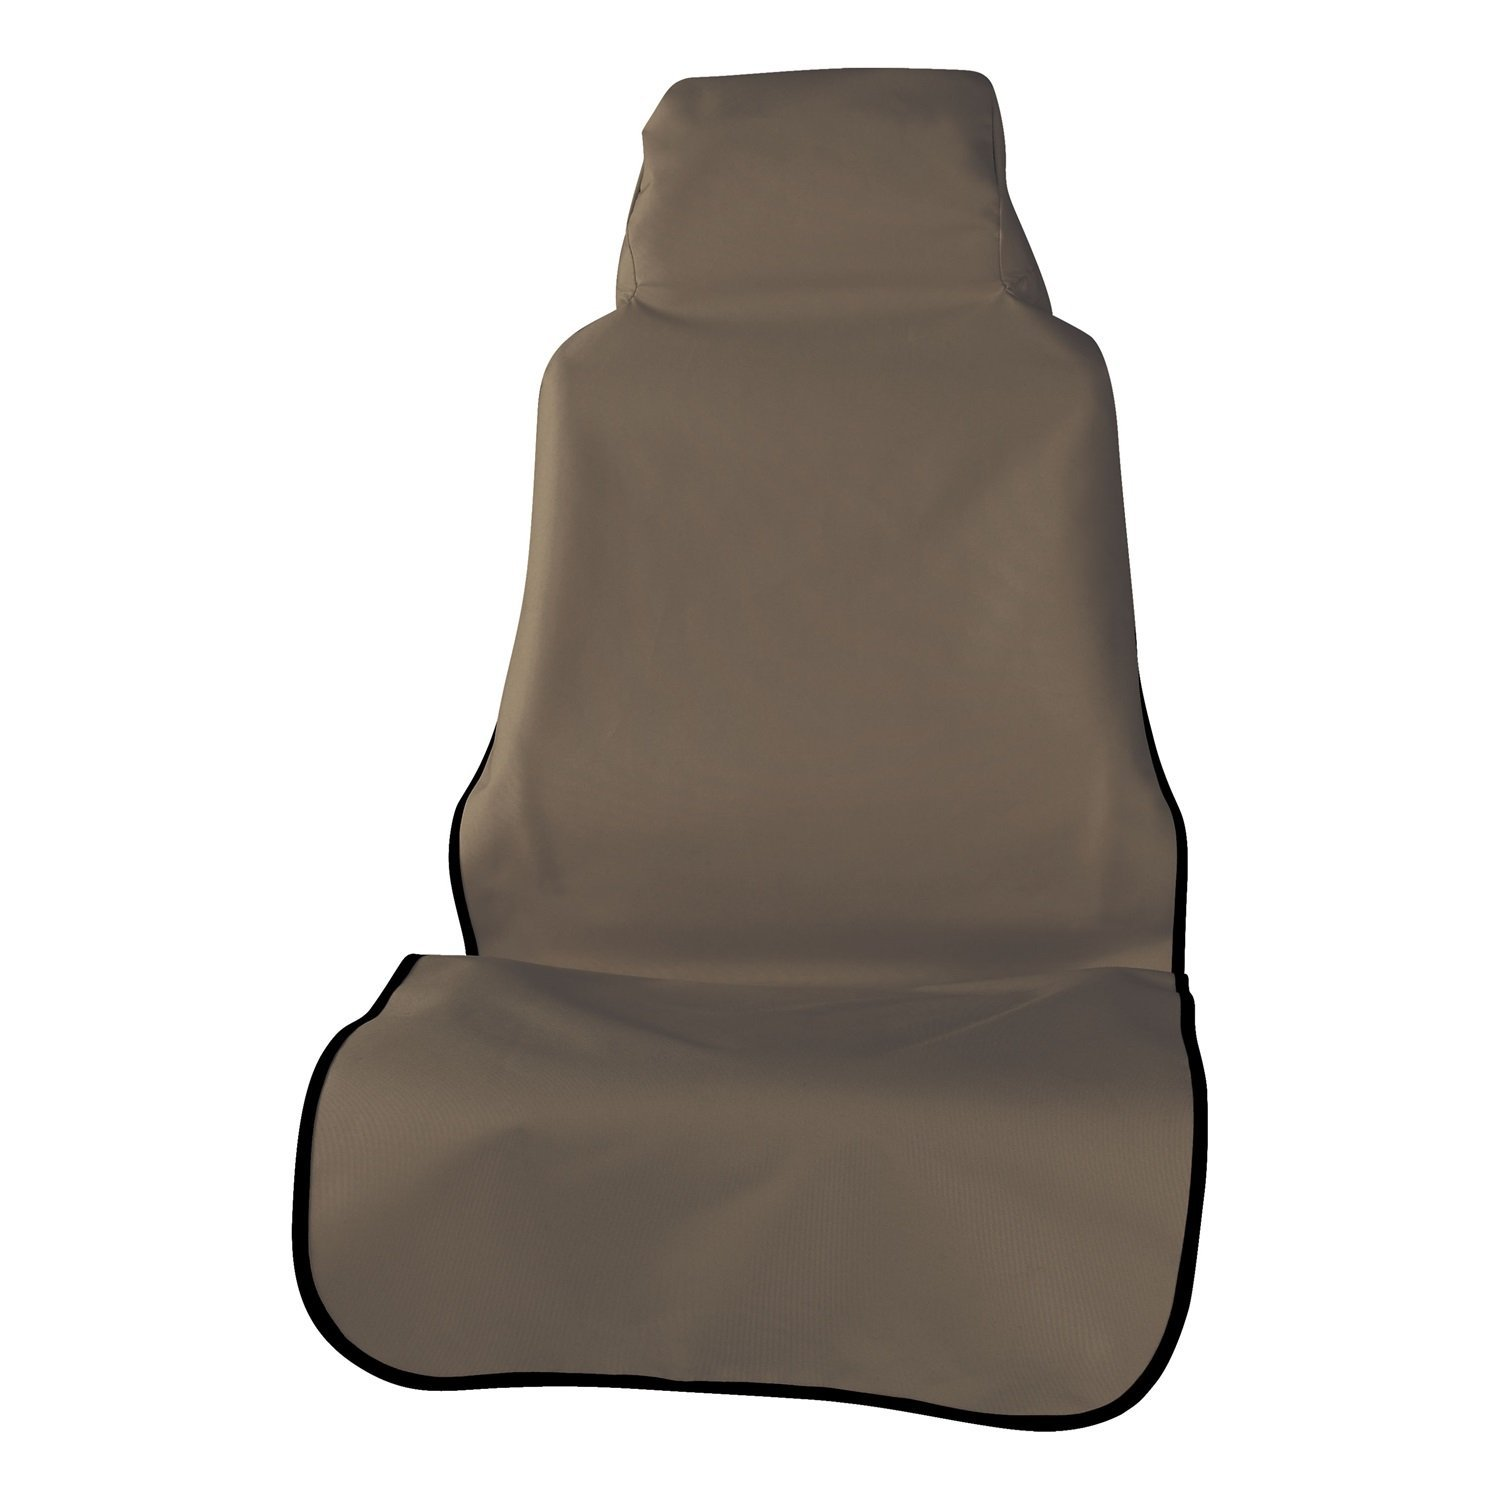 Aries Automotive 3142-18 Brown Universal Bucket Seat Cover, 100% Waterproof and Machine Washable